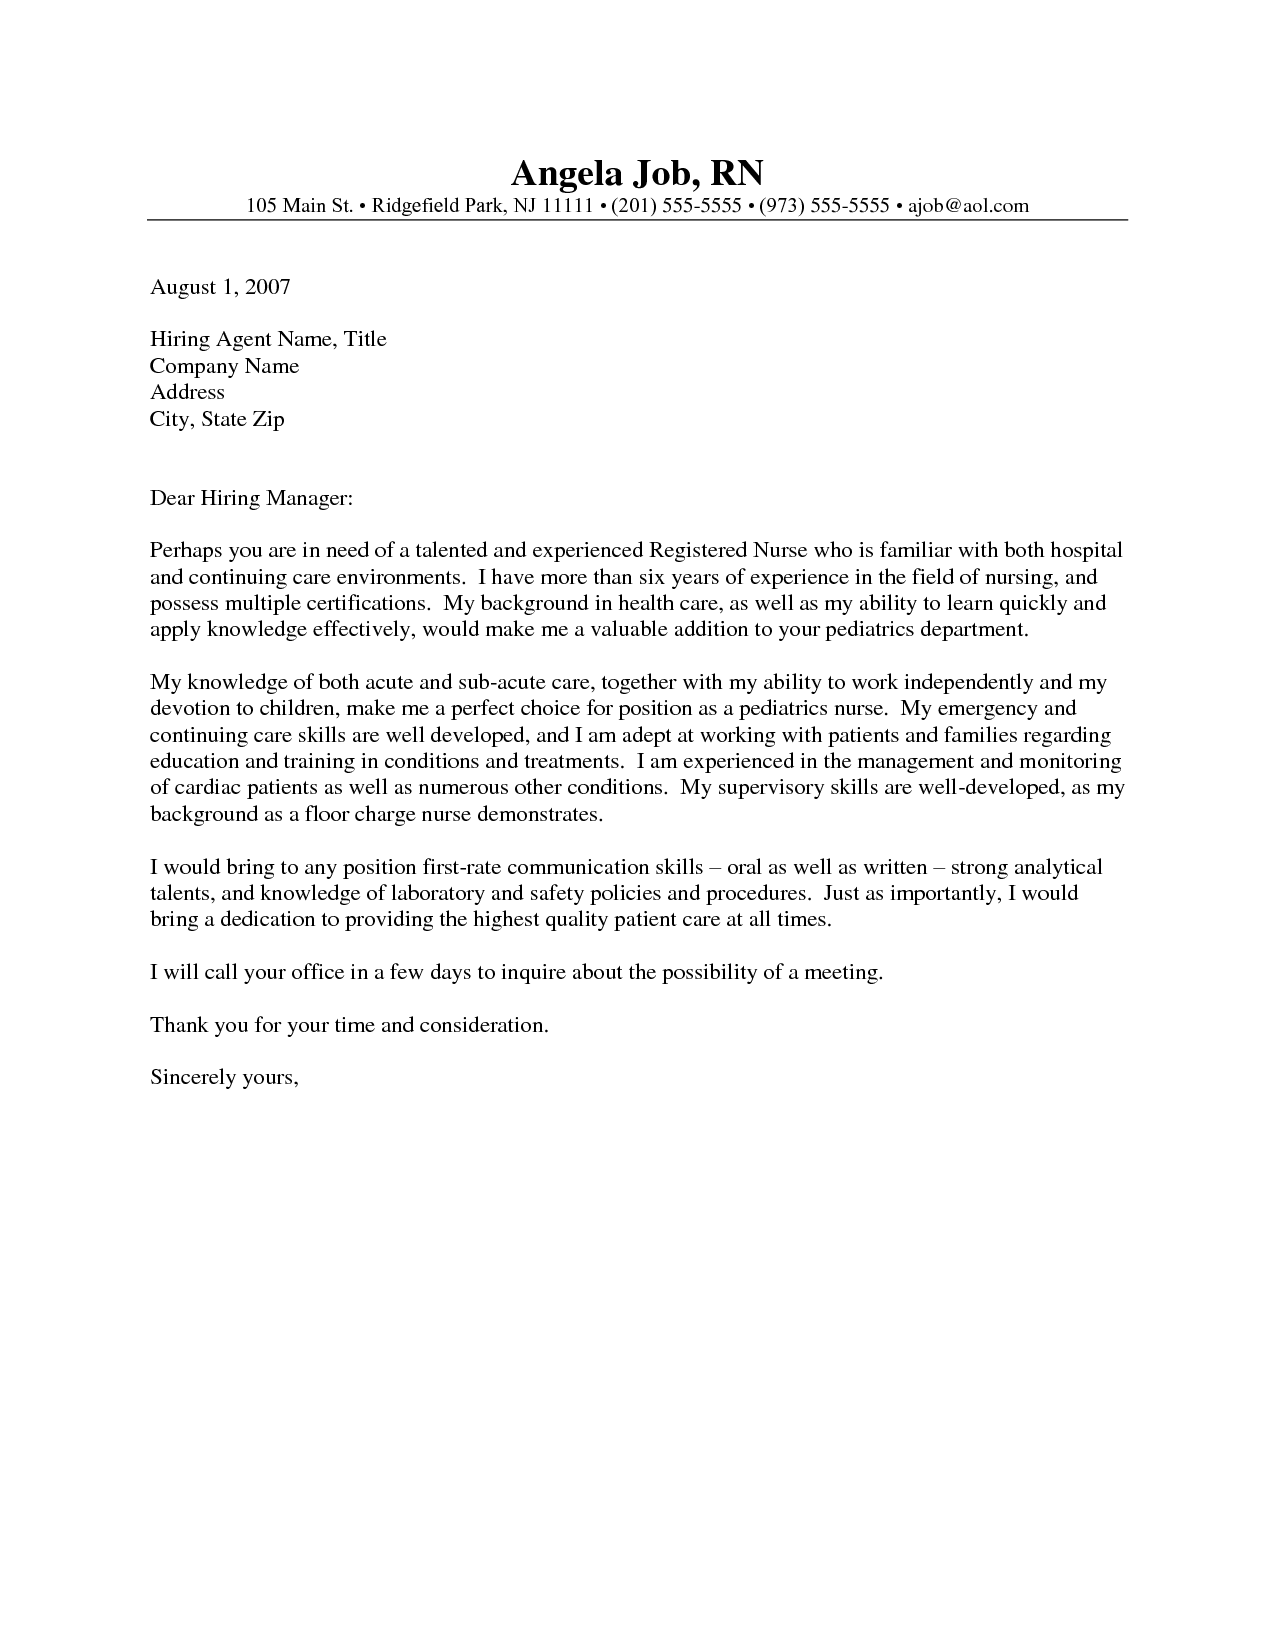 Cover Letter Template New Graduate Cover Coverlettertemplate Graduate Letter Template Nursing Cover Letter Cover Letter For Resume Nurse Cover